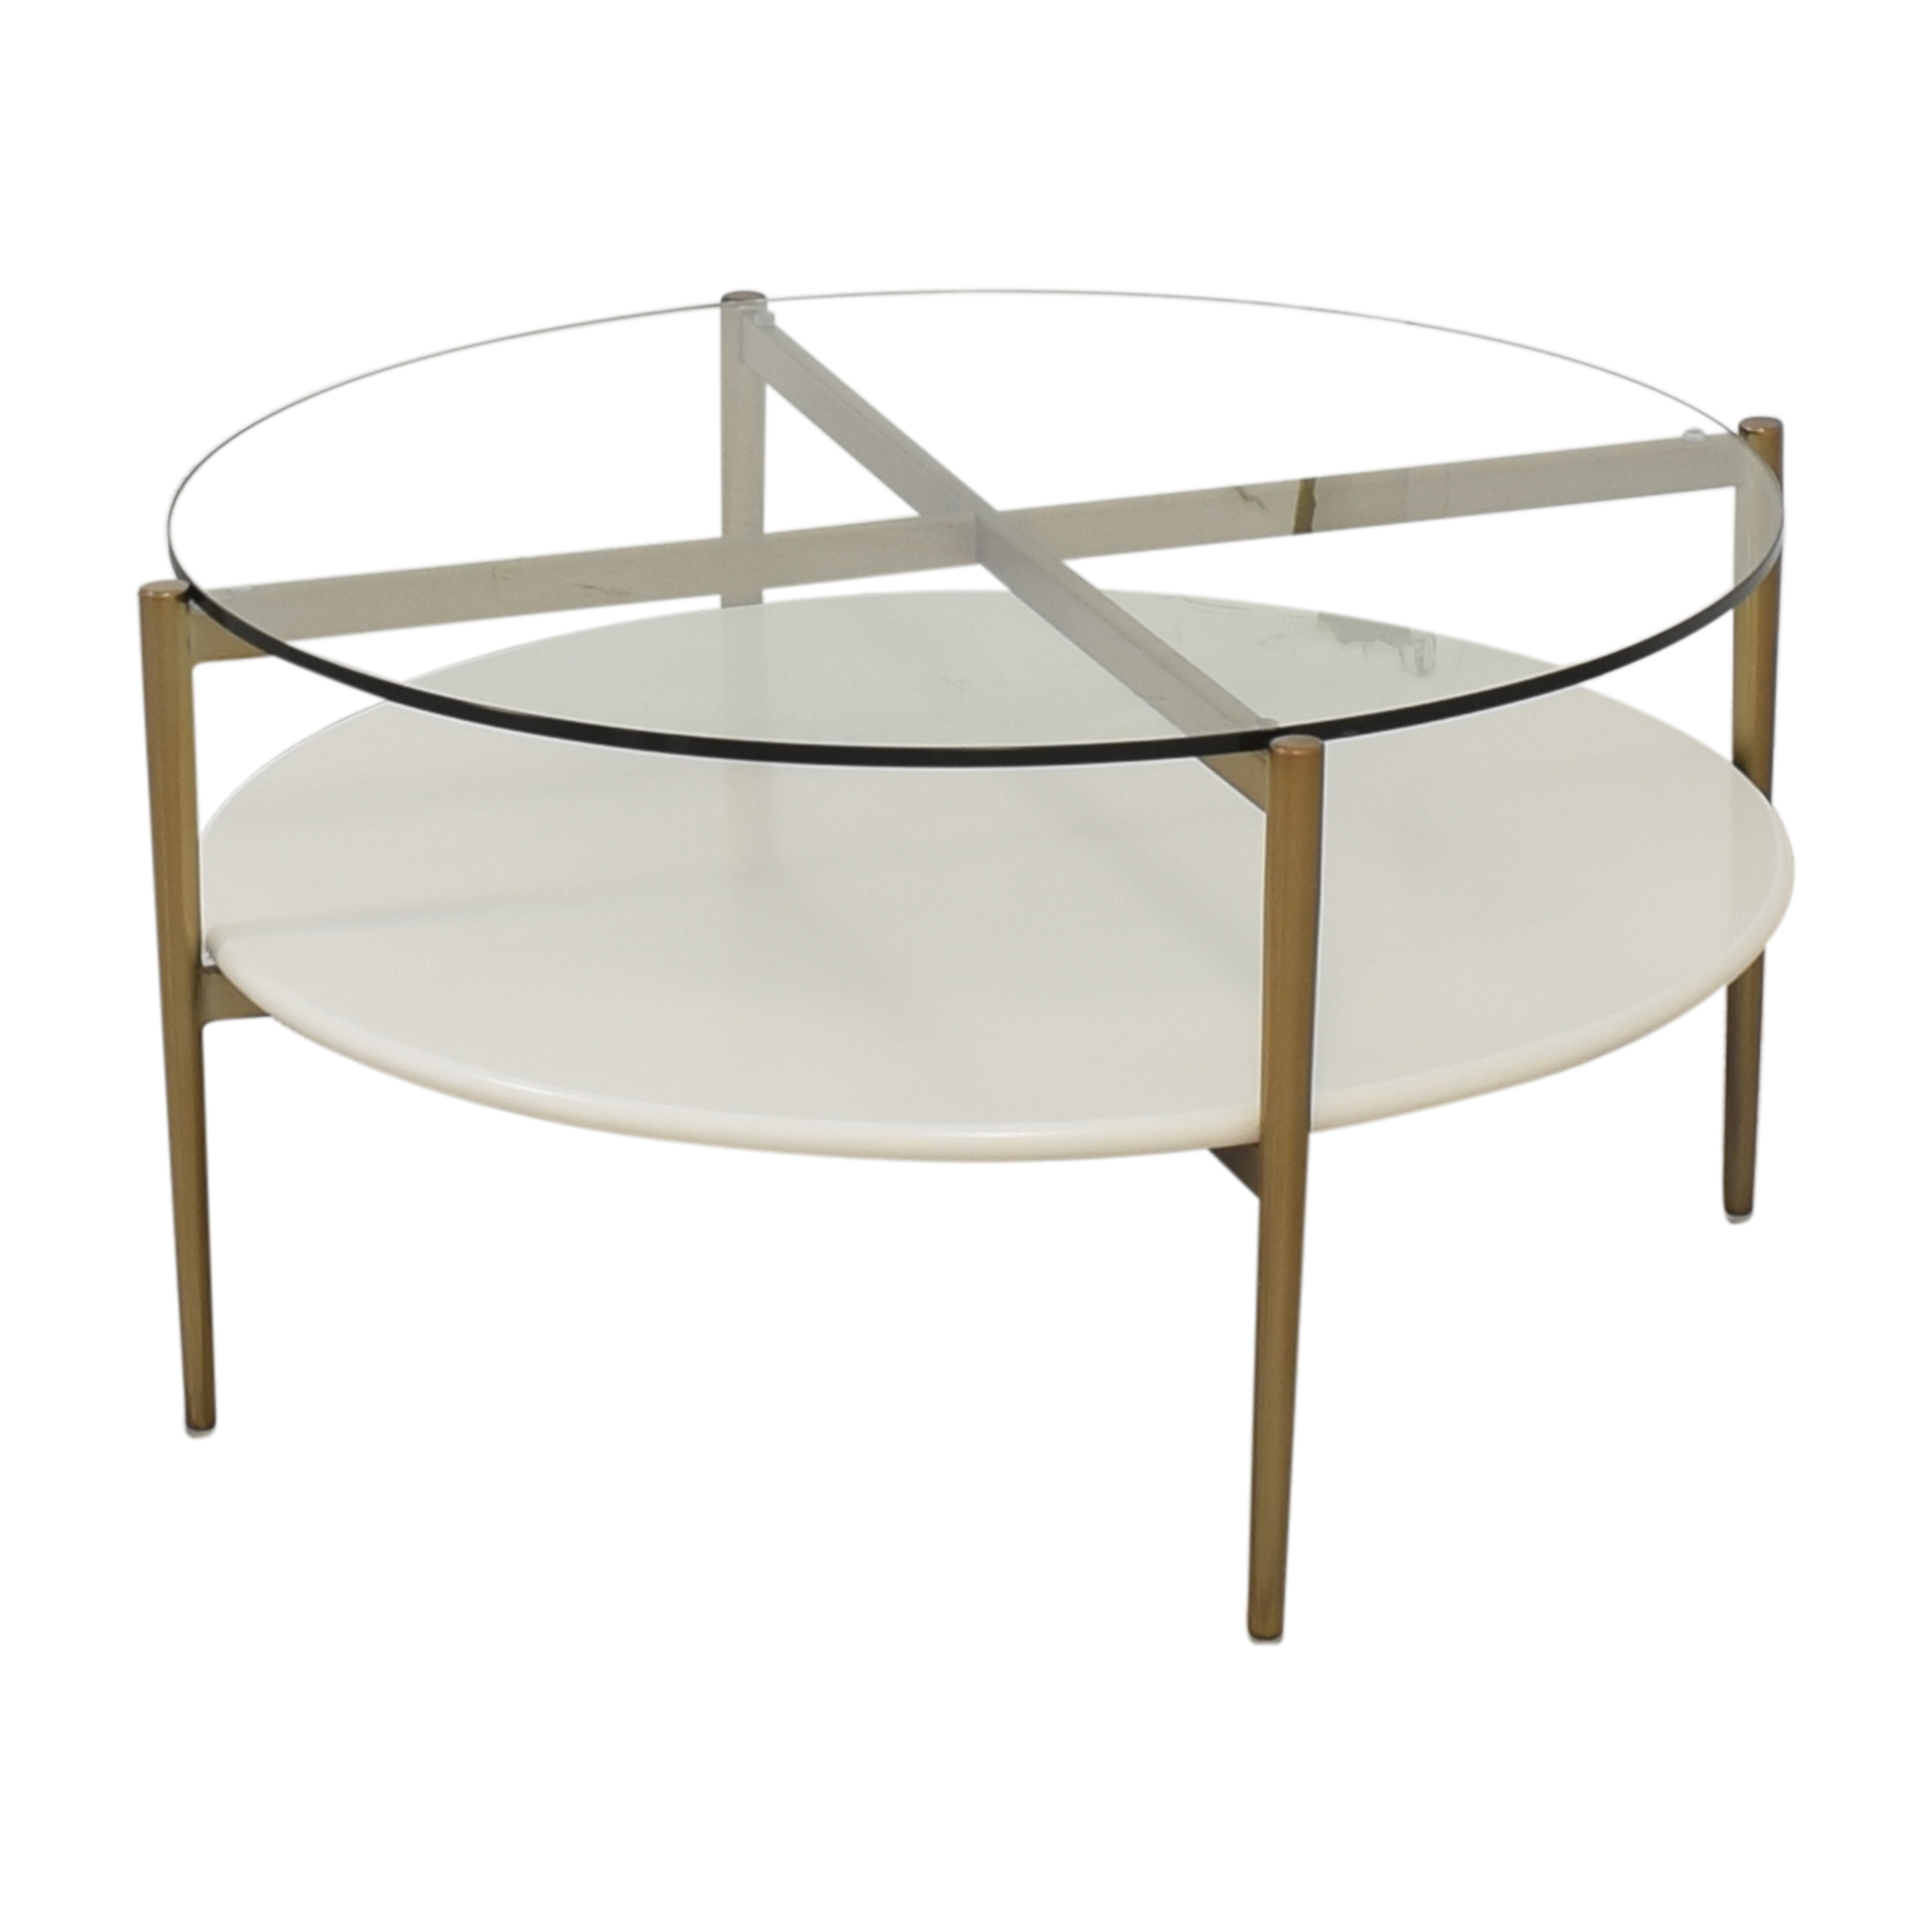 West Elm West Elm Coffee Table with Shelf and Transparent Surface nj